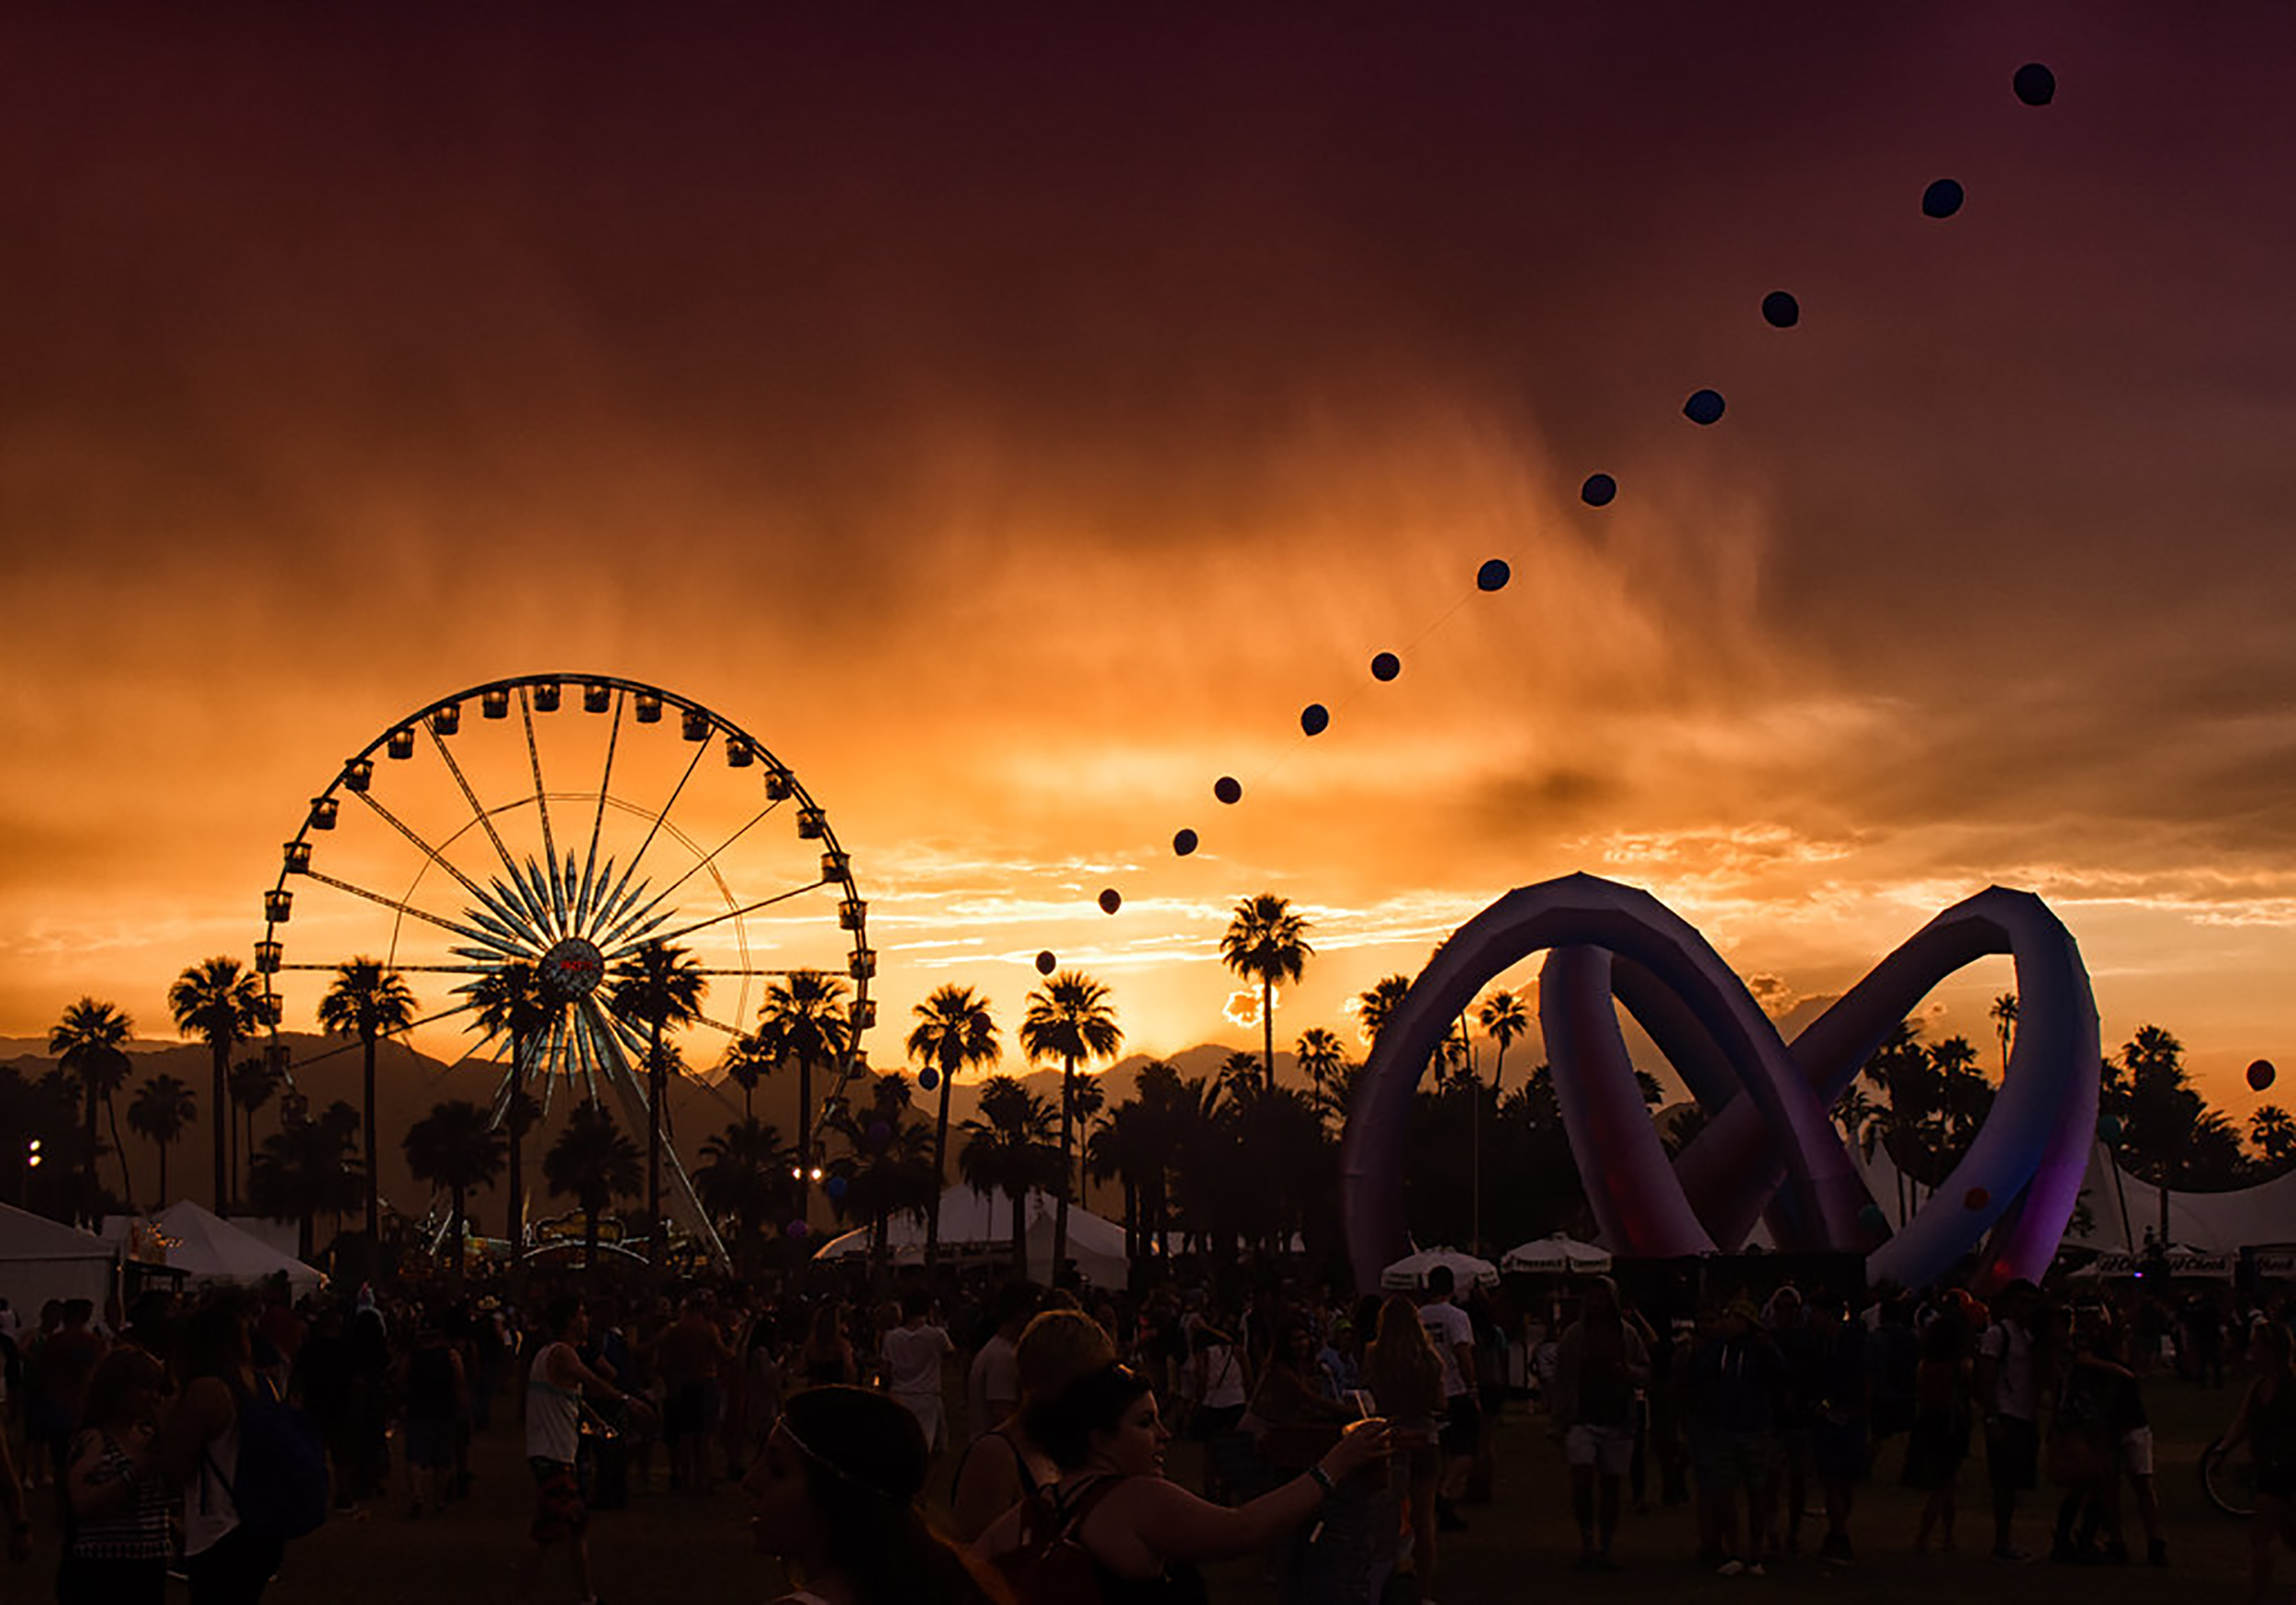 The Coachella Valley Music and Arts Festival (pictured above) preaches freedom and fluidity. Concert-goers should be aware of founder Philip Anschutz's homophobic, anti-LGBTQ+ past (courtesy of Creative Commons).